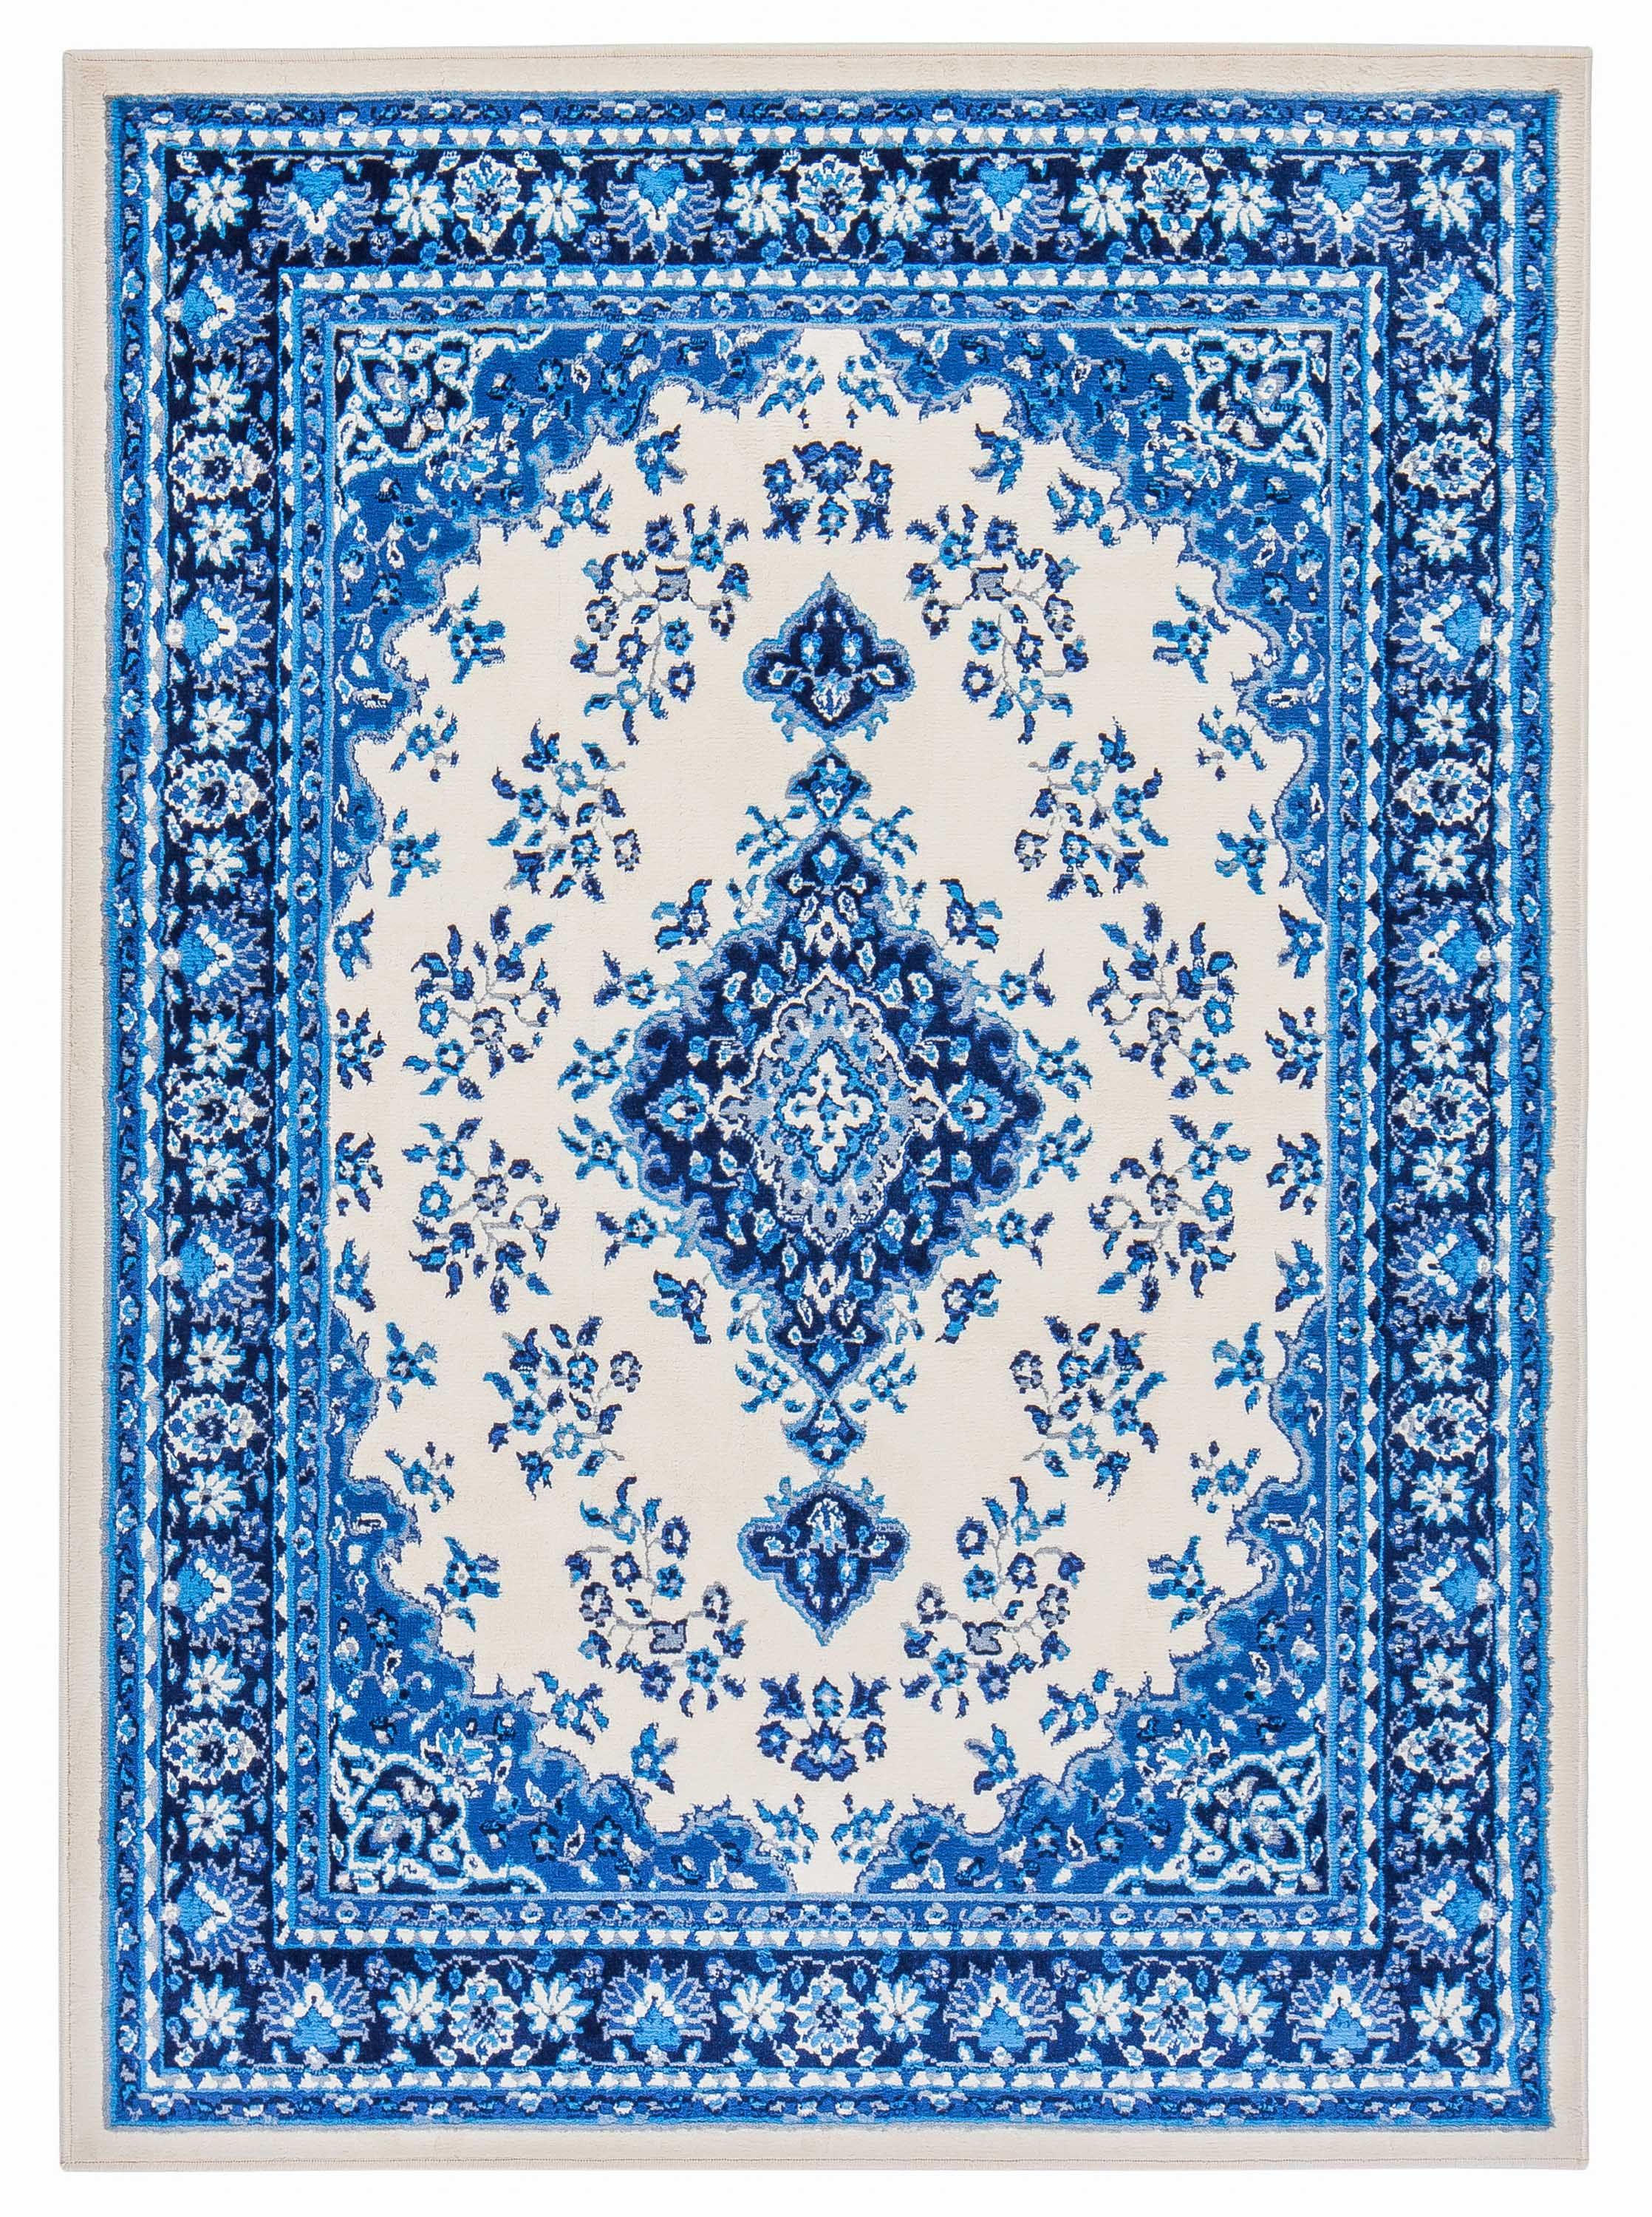 Global Persian Blue And White Medallion Rug Walmart Com